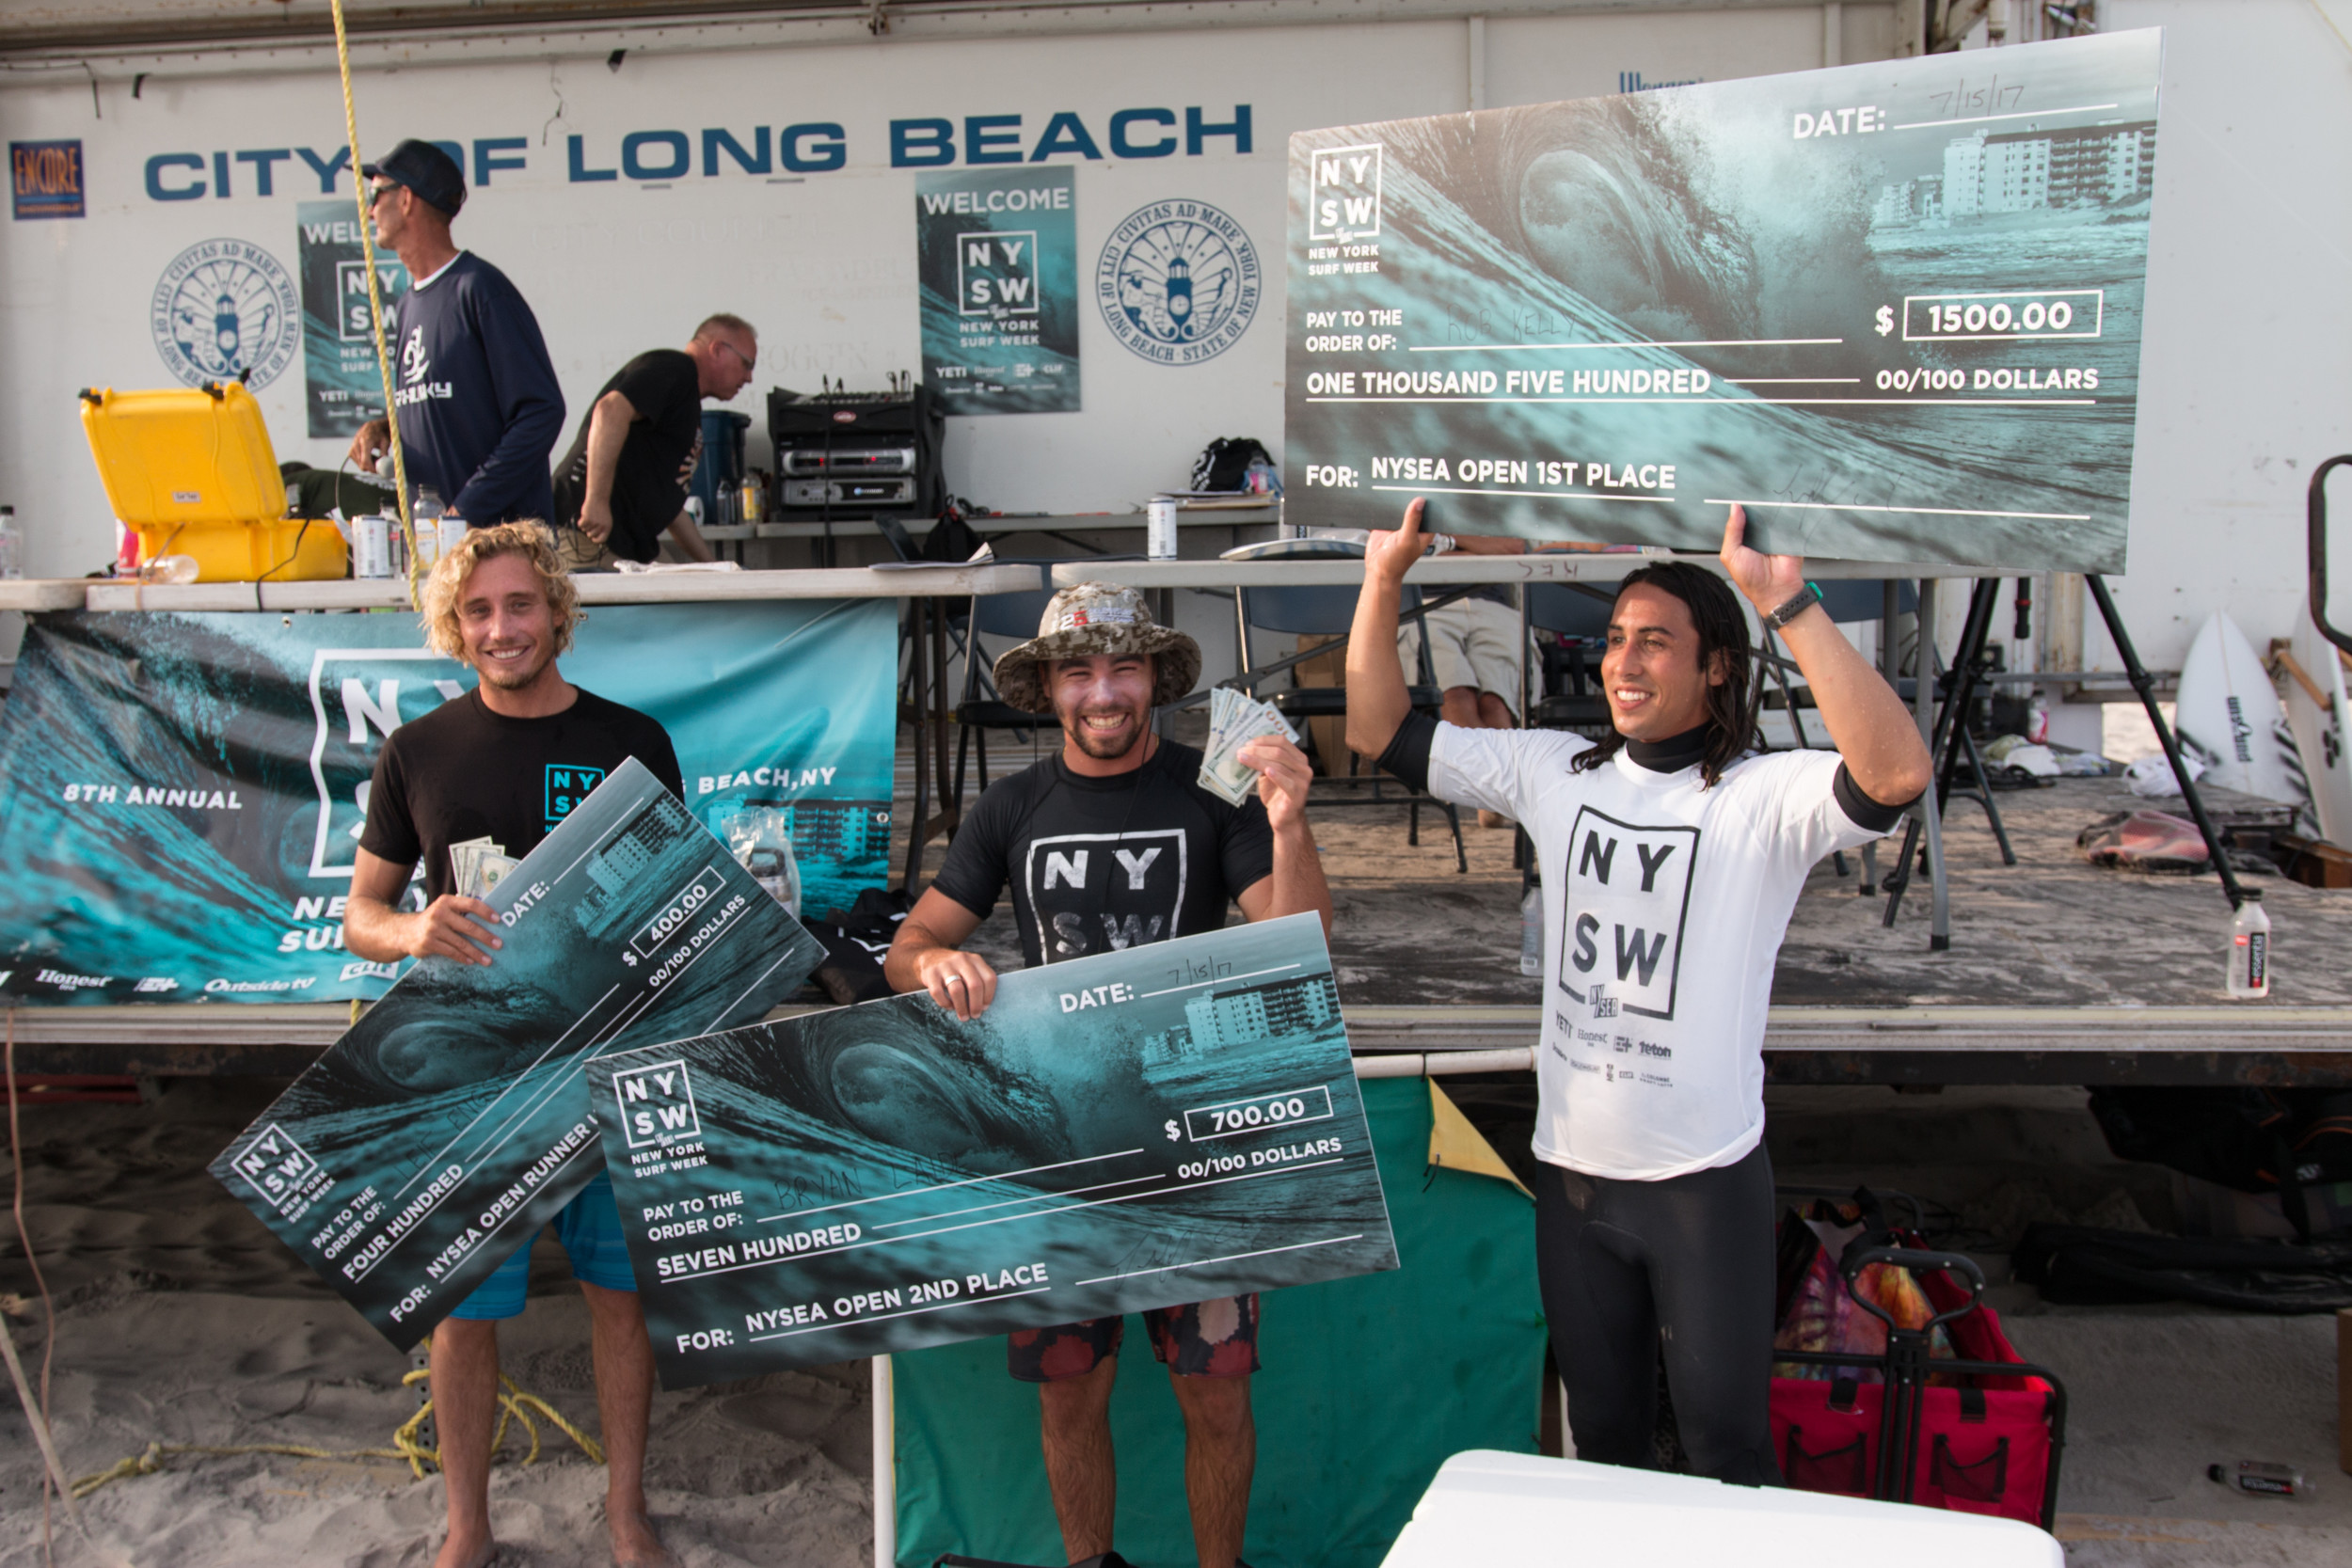 The three winners of the open surf contest collected their winnings on July 15. Leif Engstrom, left, won third place, while Bryan Laide won second place and Rob Kelly took first.